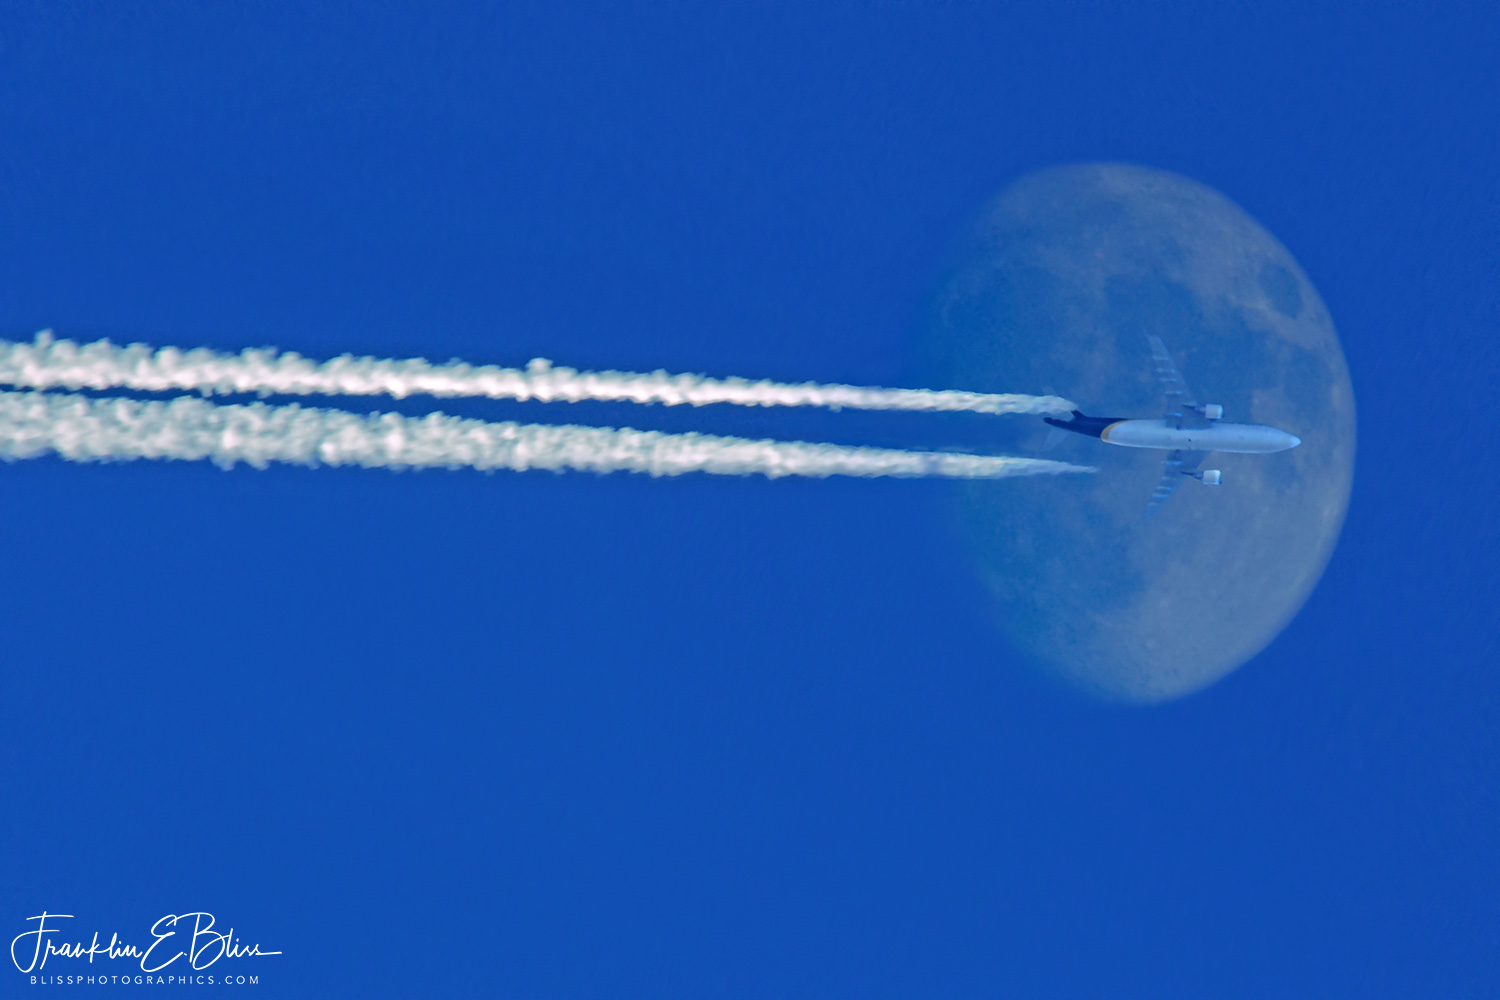 Fly Jet Blue to the Moon